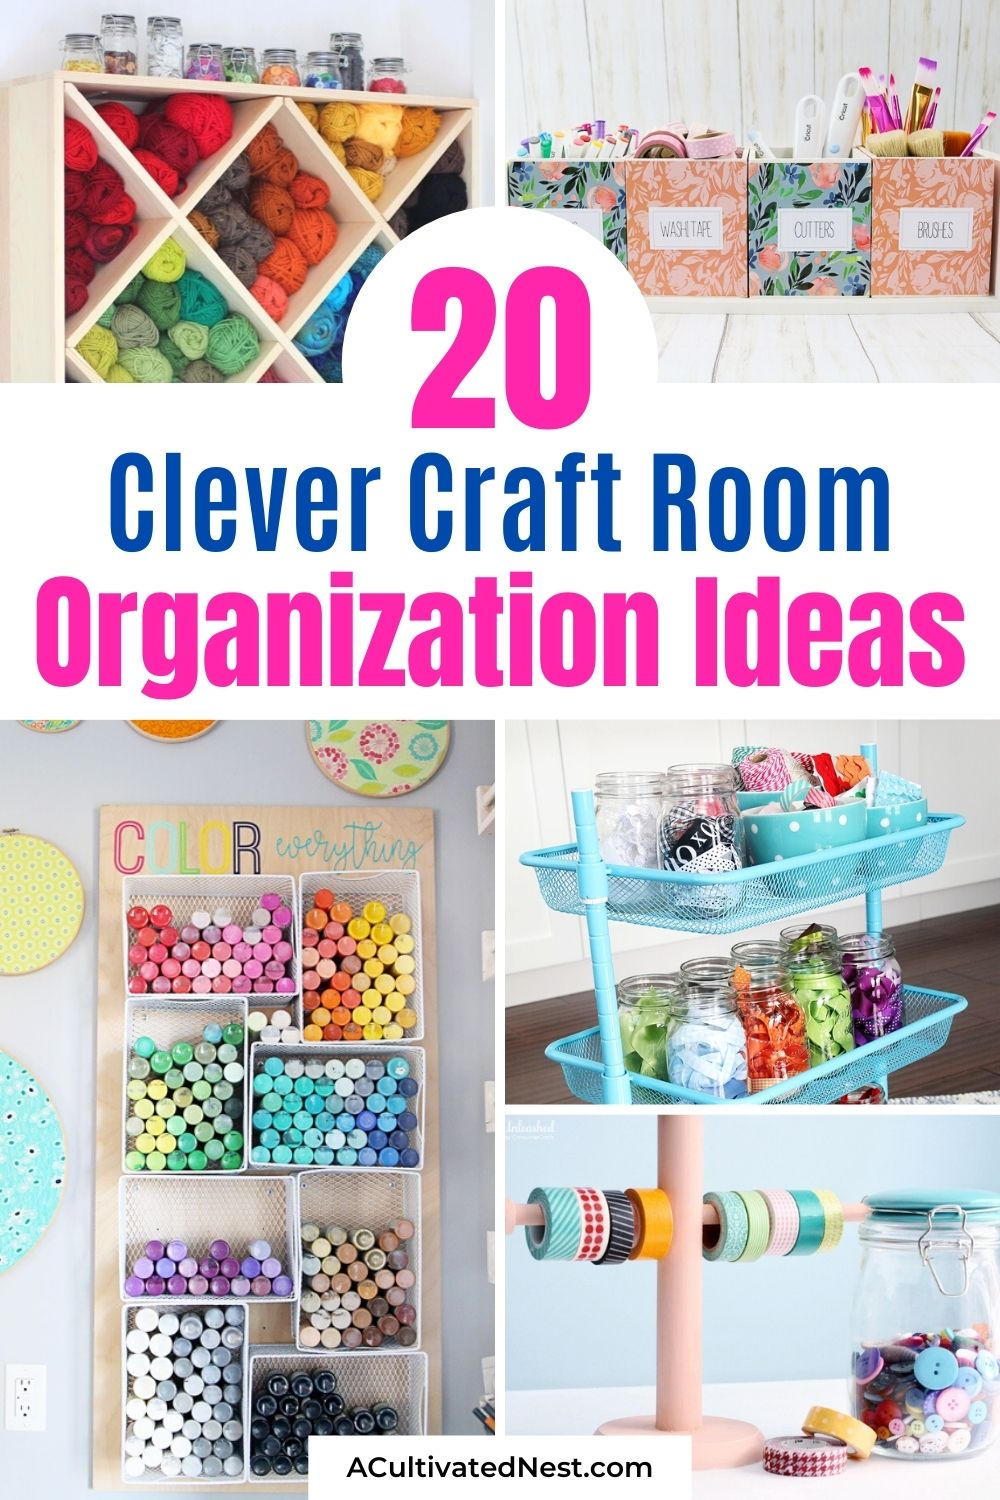 20 Clever Craft Room Organization Ideas- If your craft supplies are taking over your craft room, then you'll love these 20 clever craft room organization ideas! They're all unique, and so helpful! | #craftRoomOrganization #craftSupplyOrganization #organizing #organizingTips #ACultivatedNest